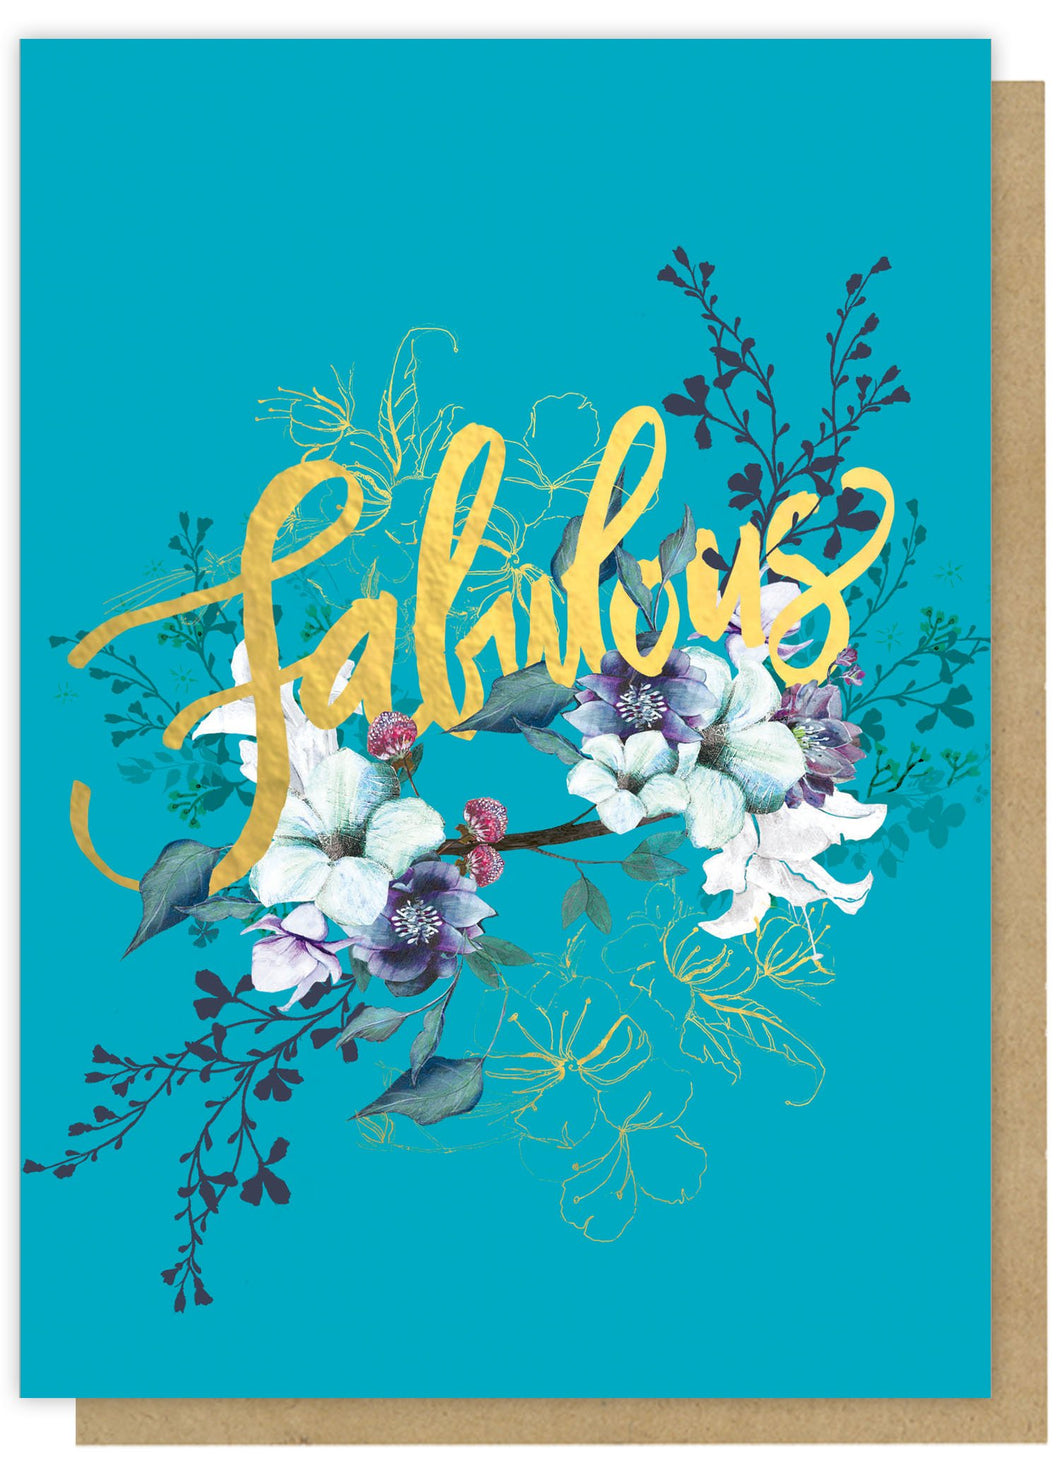 Papaya - Fabulous Greeting card